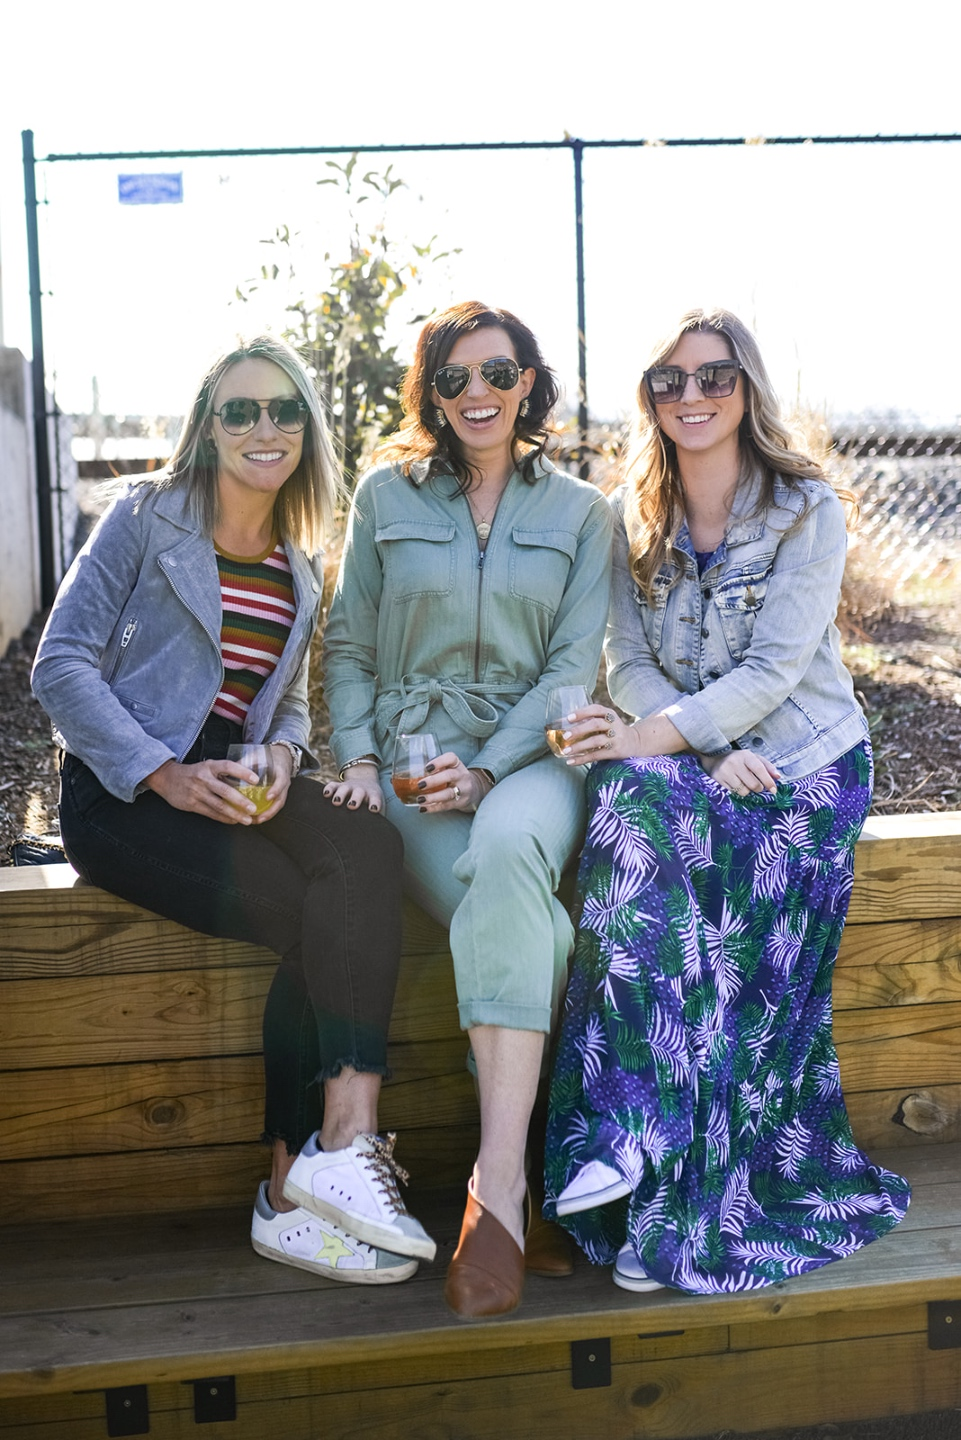 20 Moments I am Grateful for in 2020 - I'm Fixin' To - @imfixintoblog |Moments to be Grateful for by popular NC lifestyle blog, I'm Fixin' To: image of three women sitting together outside.